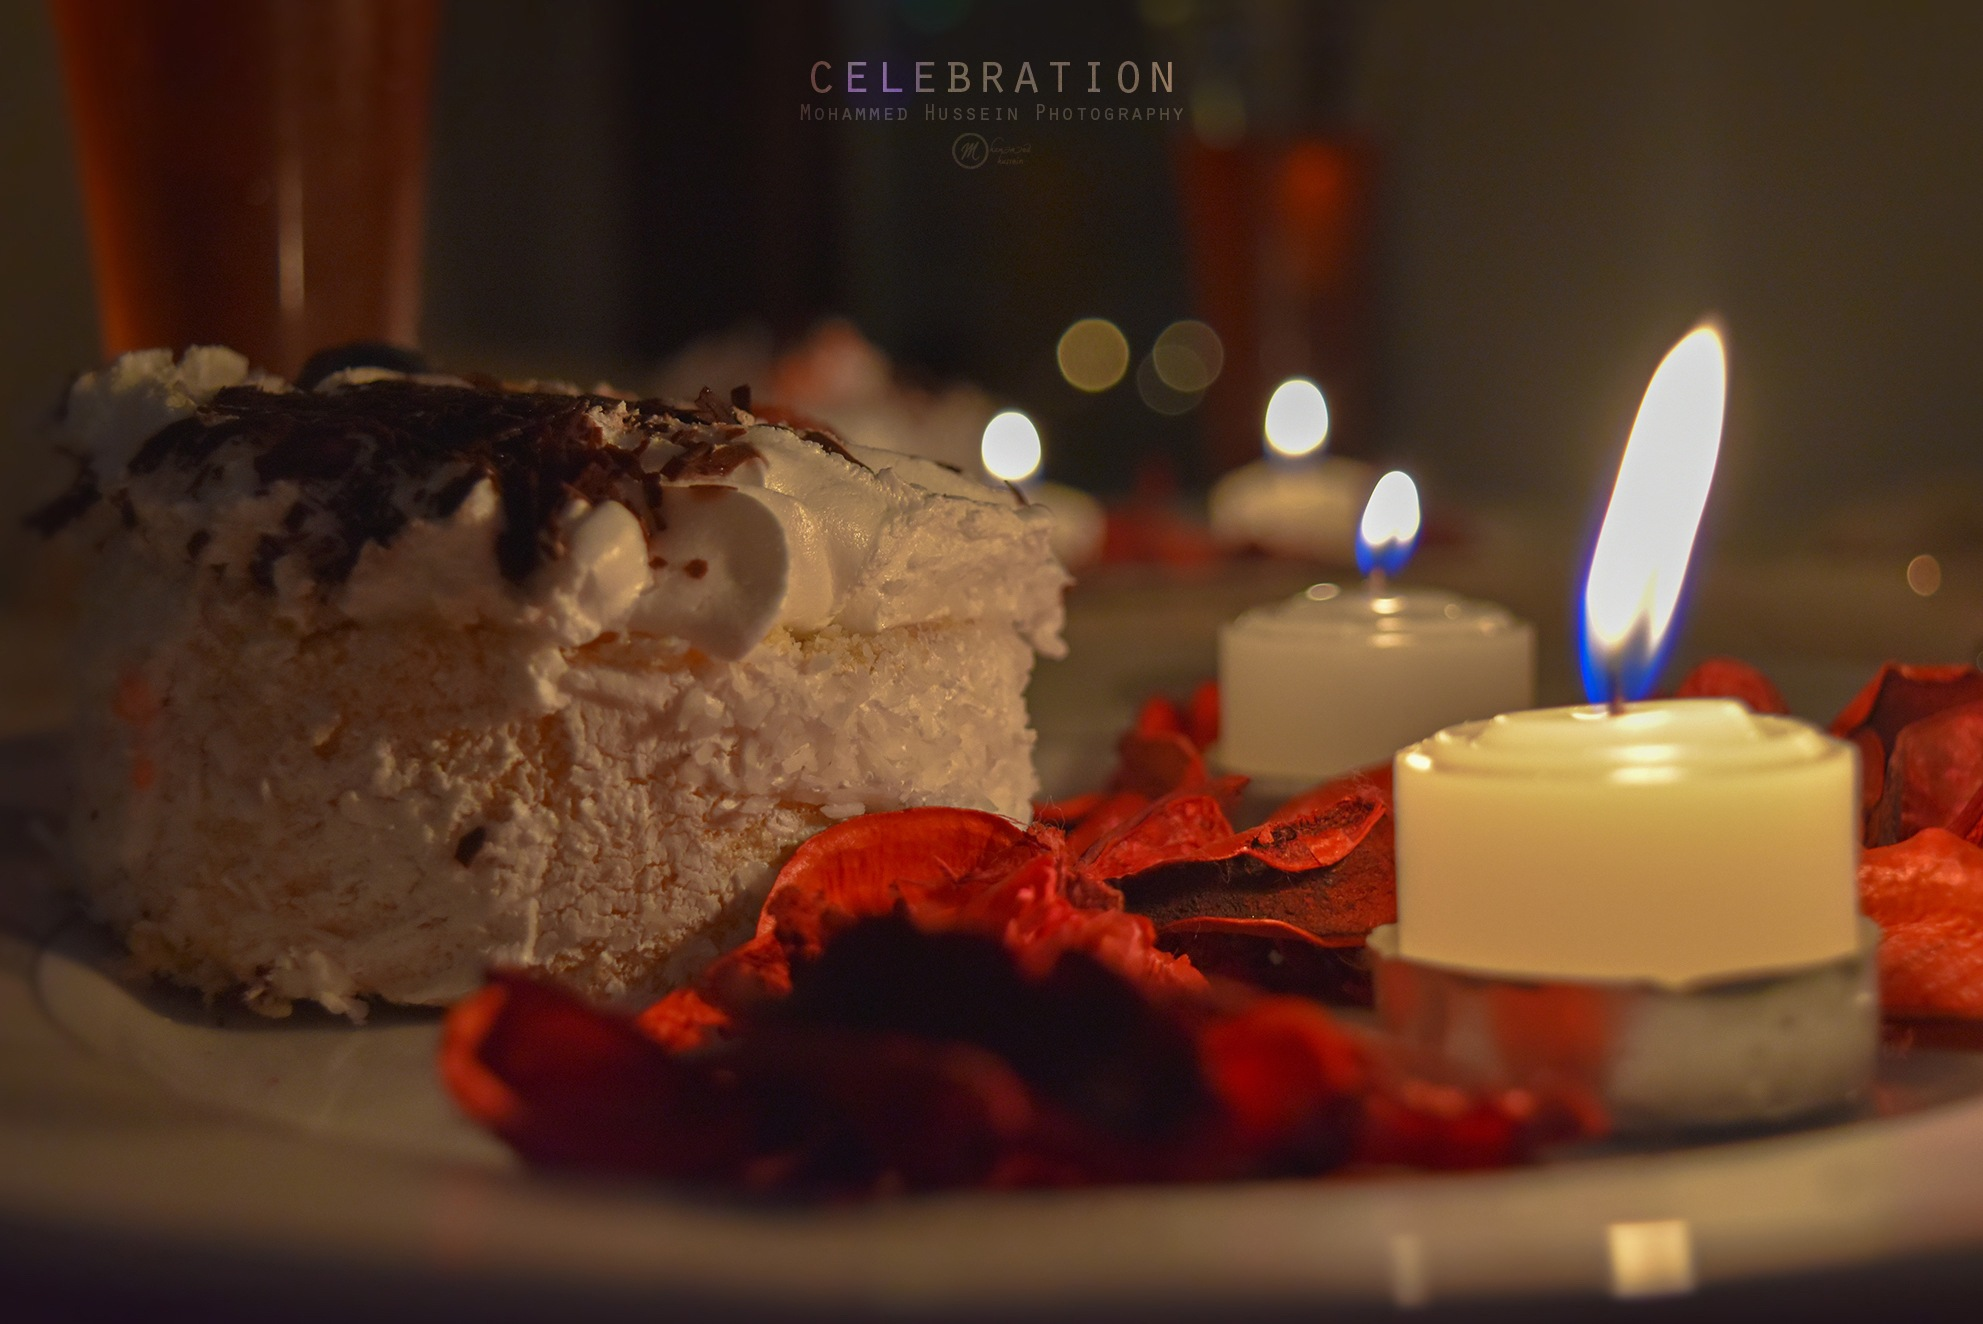 Celebration by Mohammed H. Photography